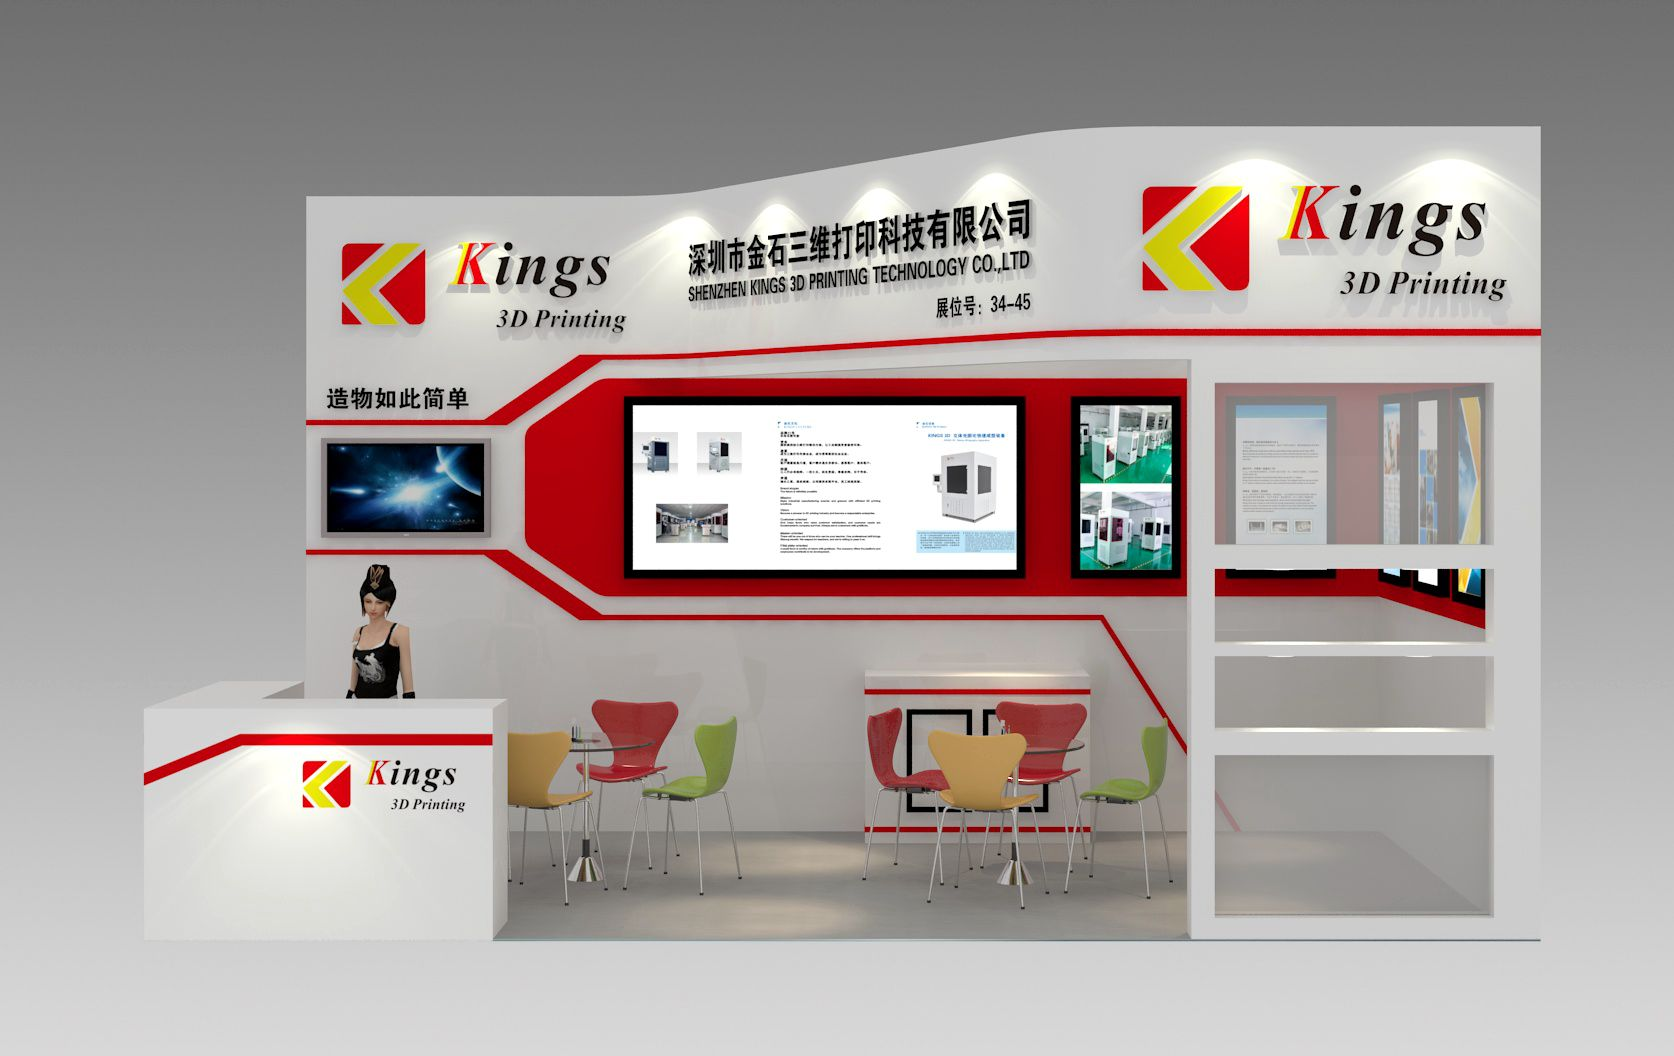 4.19-22, Kings high-speed SLA 3D printing model machine, meet you Jinjiang Footwear Expo